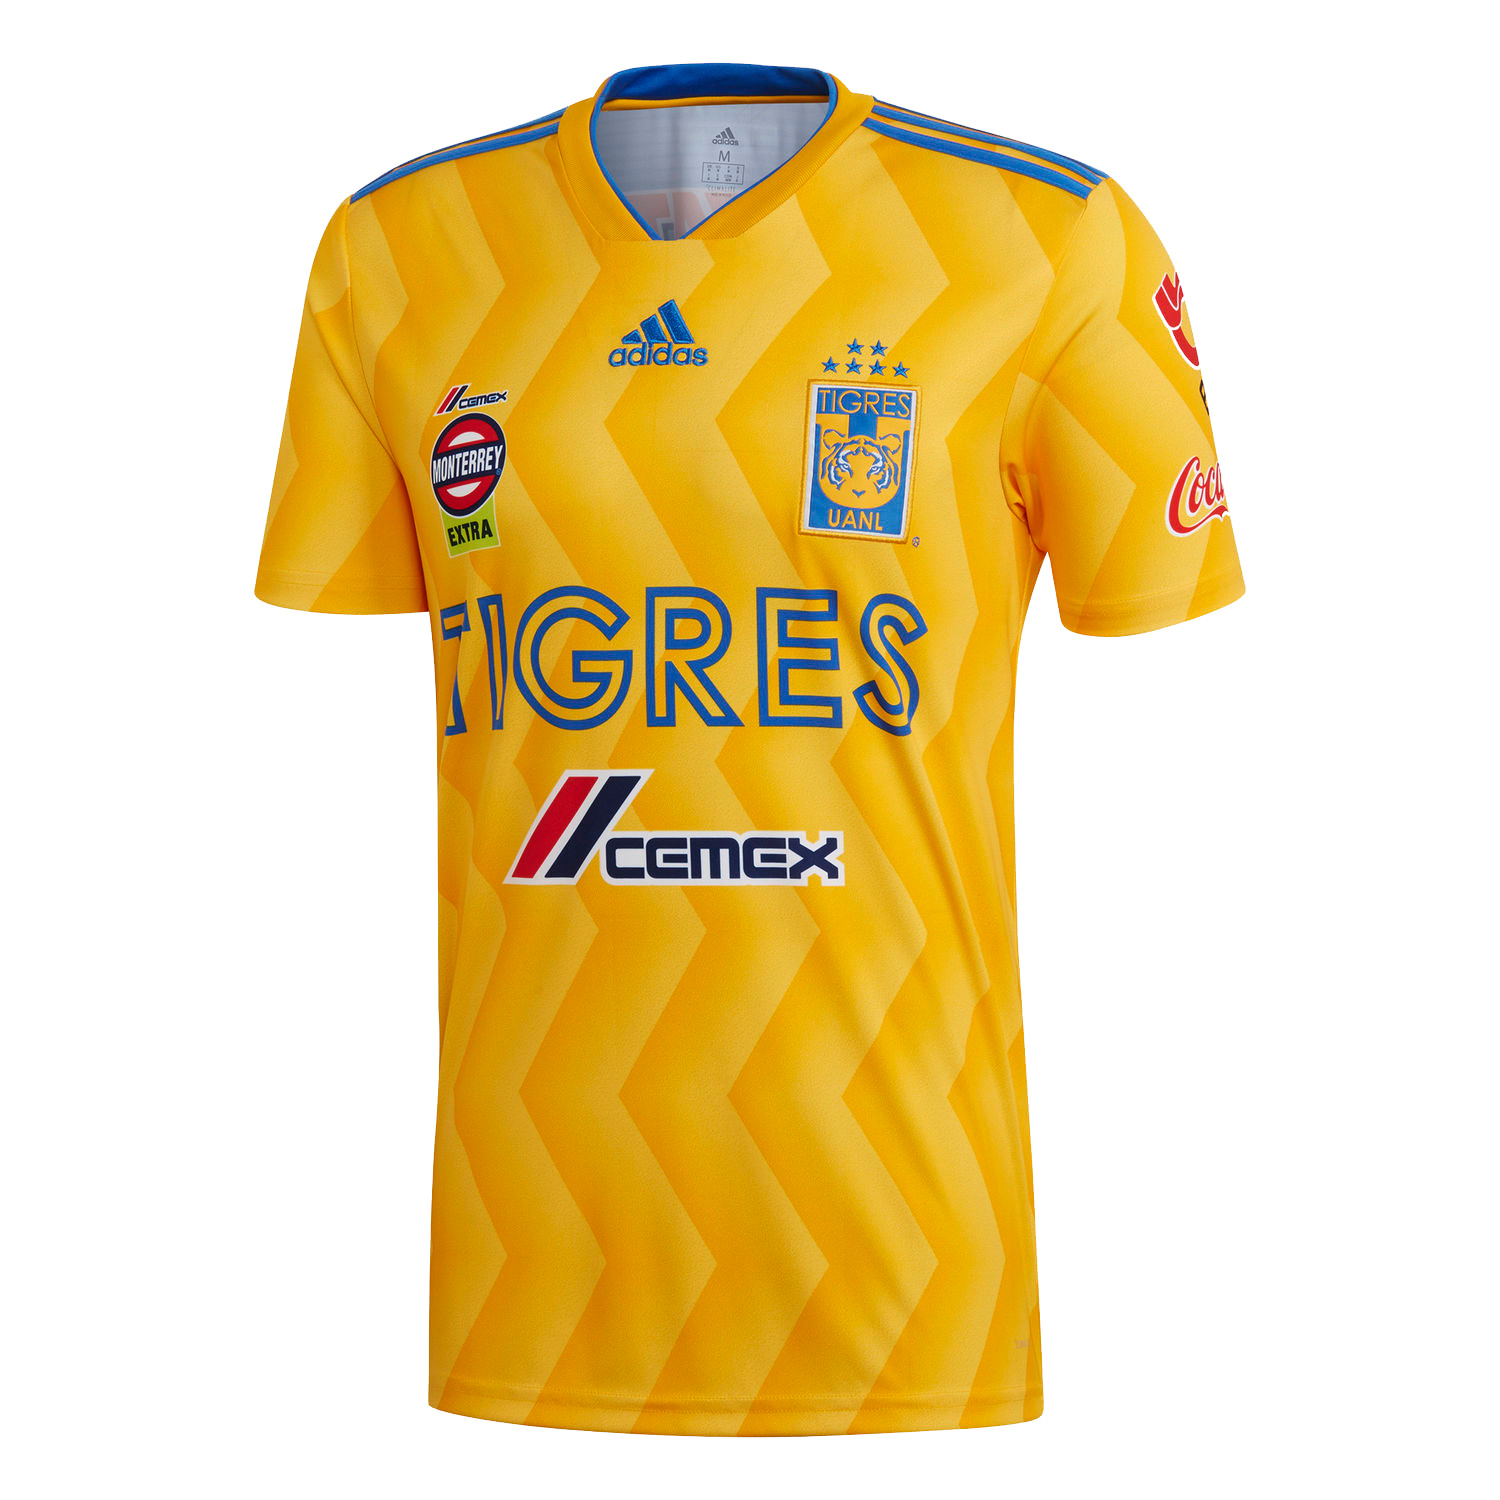 adidas Tigres UANL 2018-19 Youth Away Replica Jersey  3b4289e63